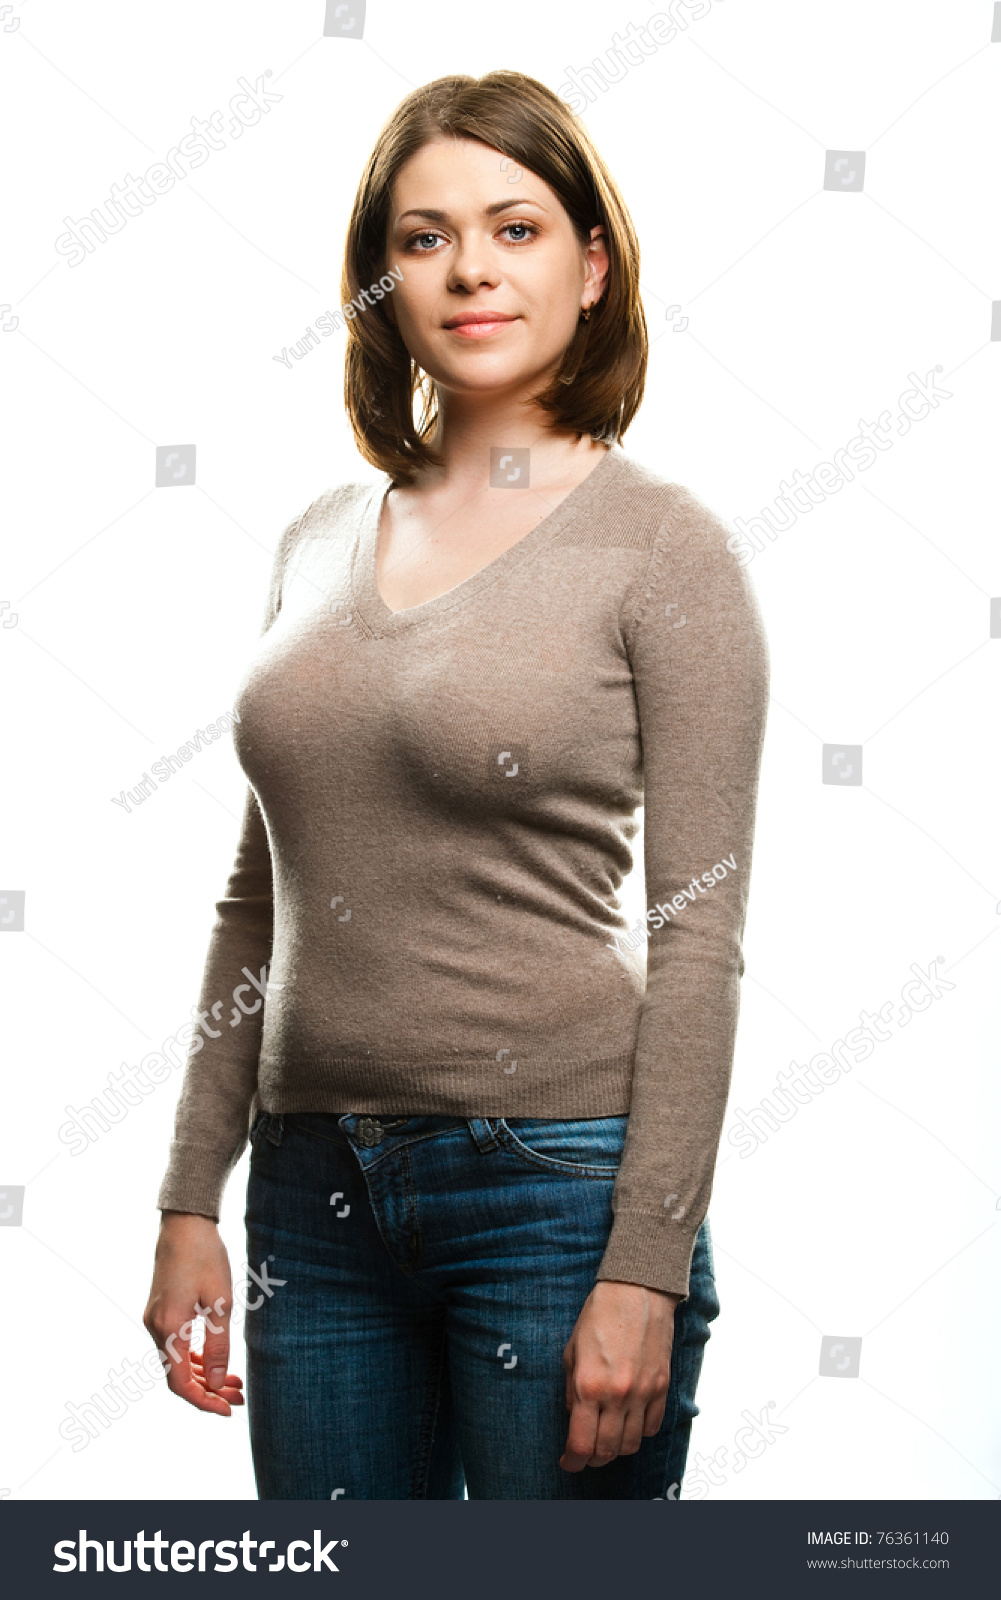 Portrait Young Happy Woman Casual Dressed Stock Photo 76361140 Shutterstock